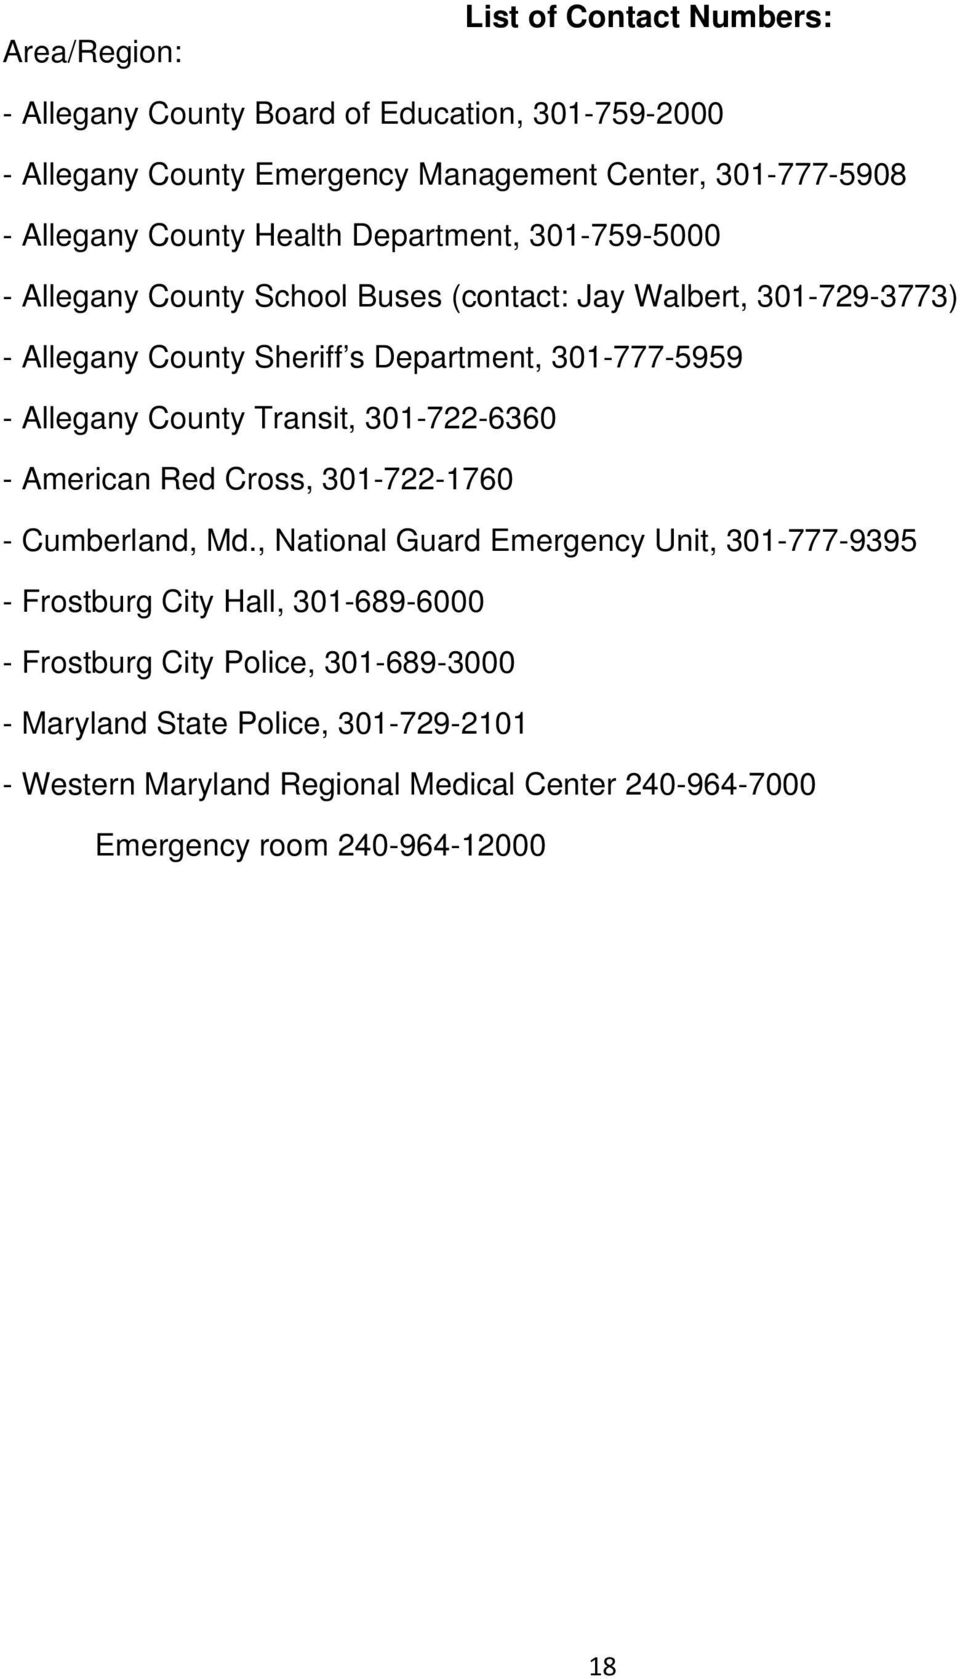 Allegany County Transit, 301-722-6360 - American Red Cross, 301-722-1760 - Cumberland, Md.